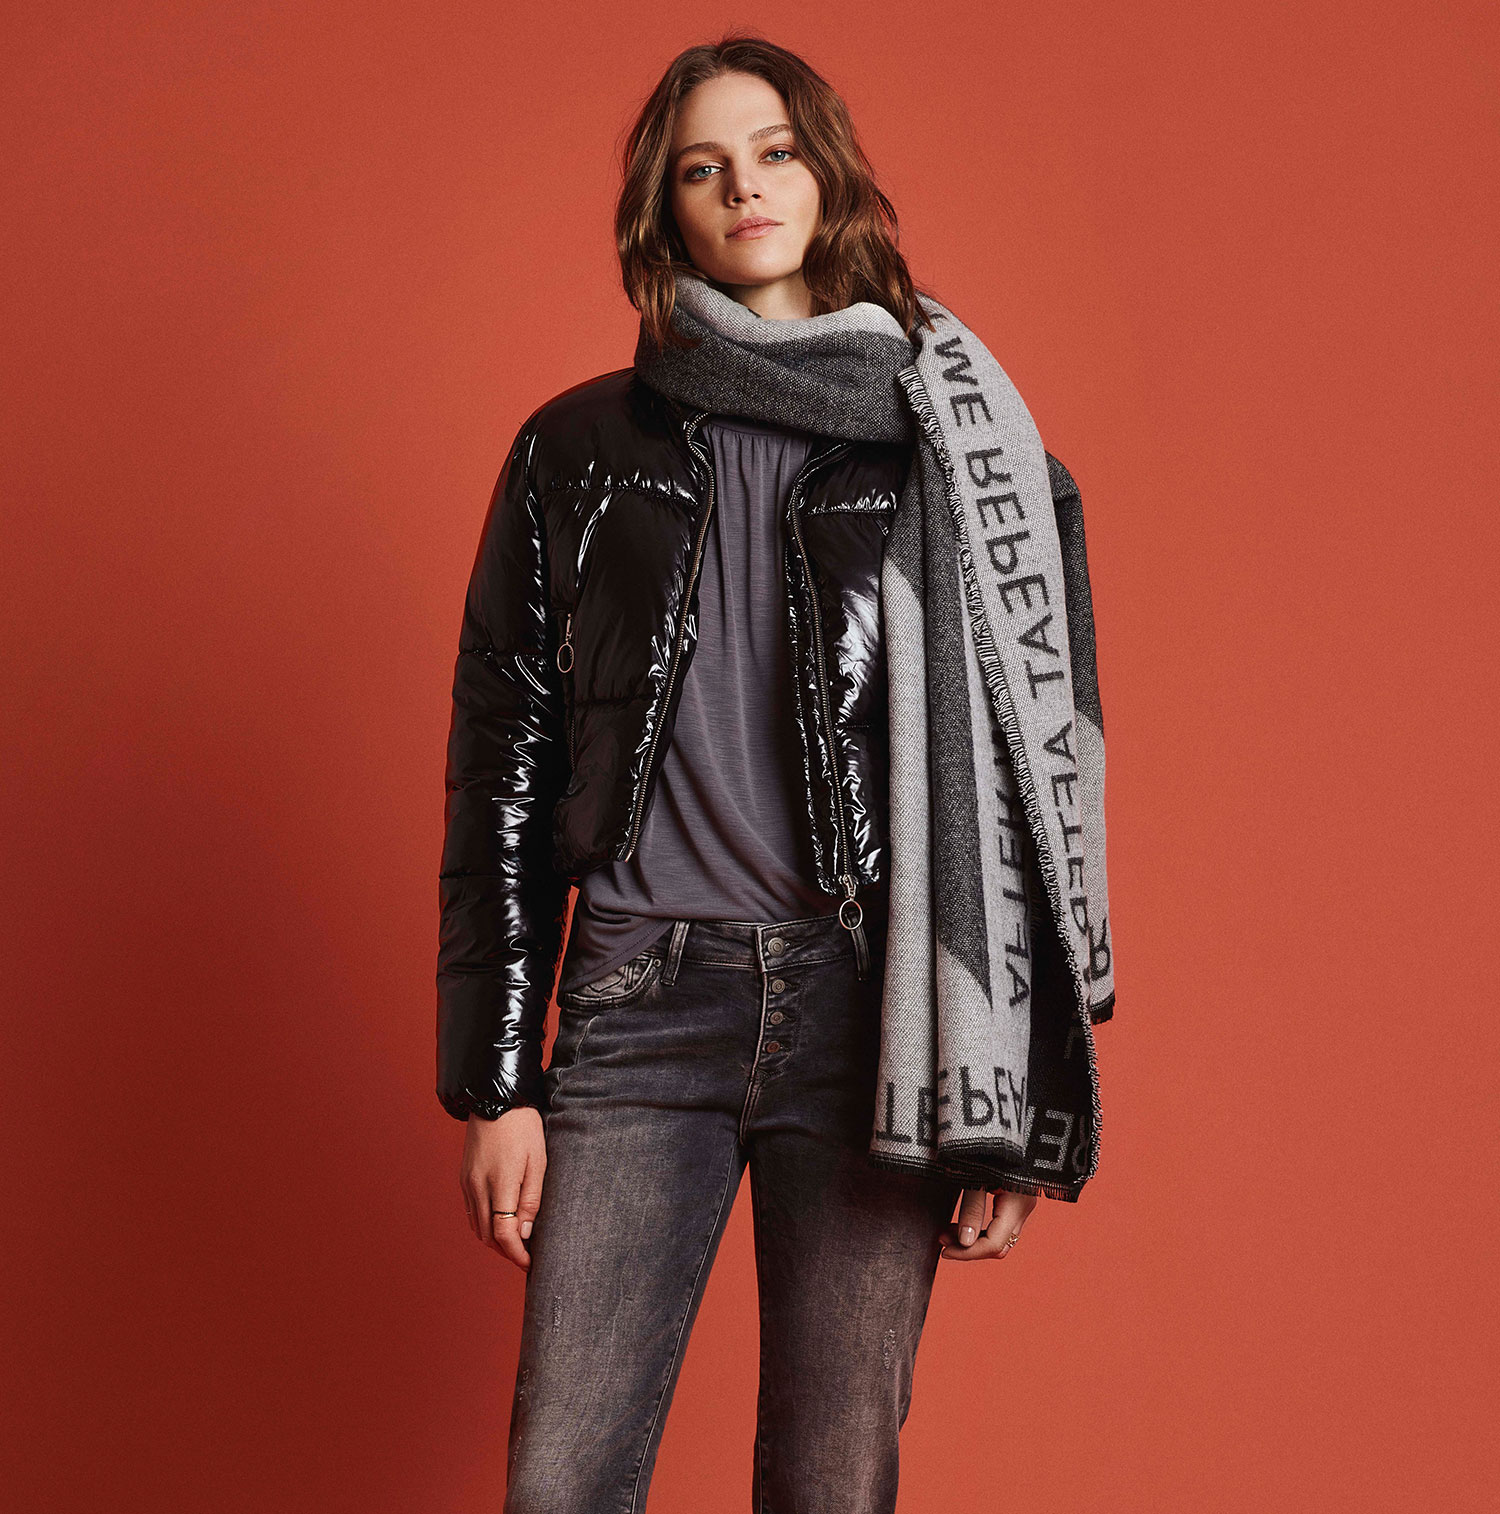 Damen Uptown Winter Essentials von Mavi